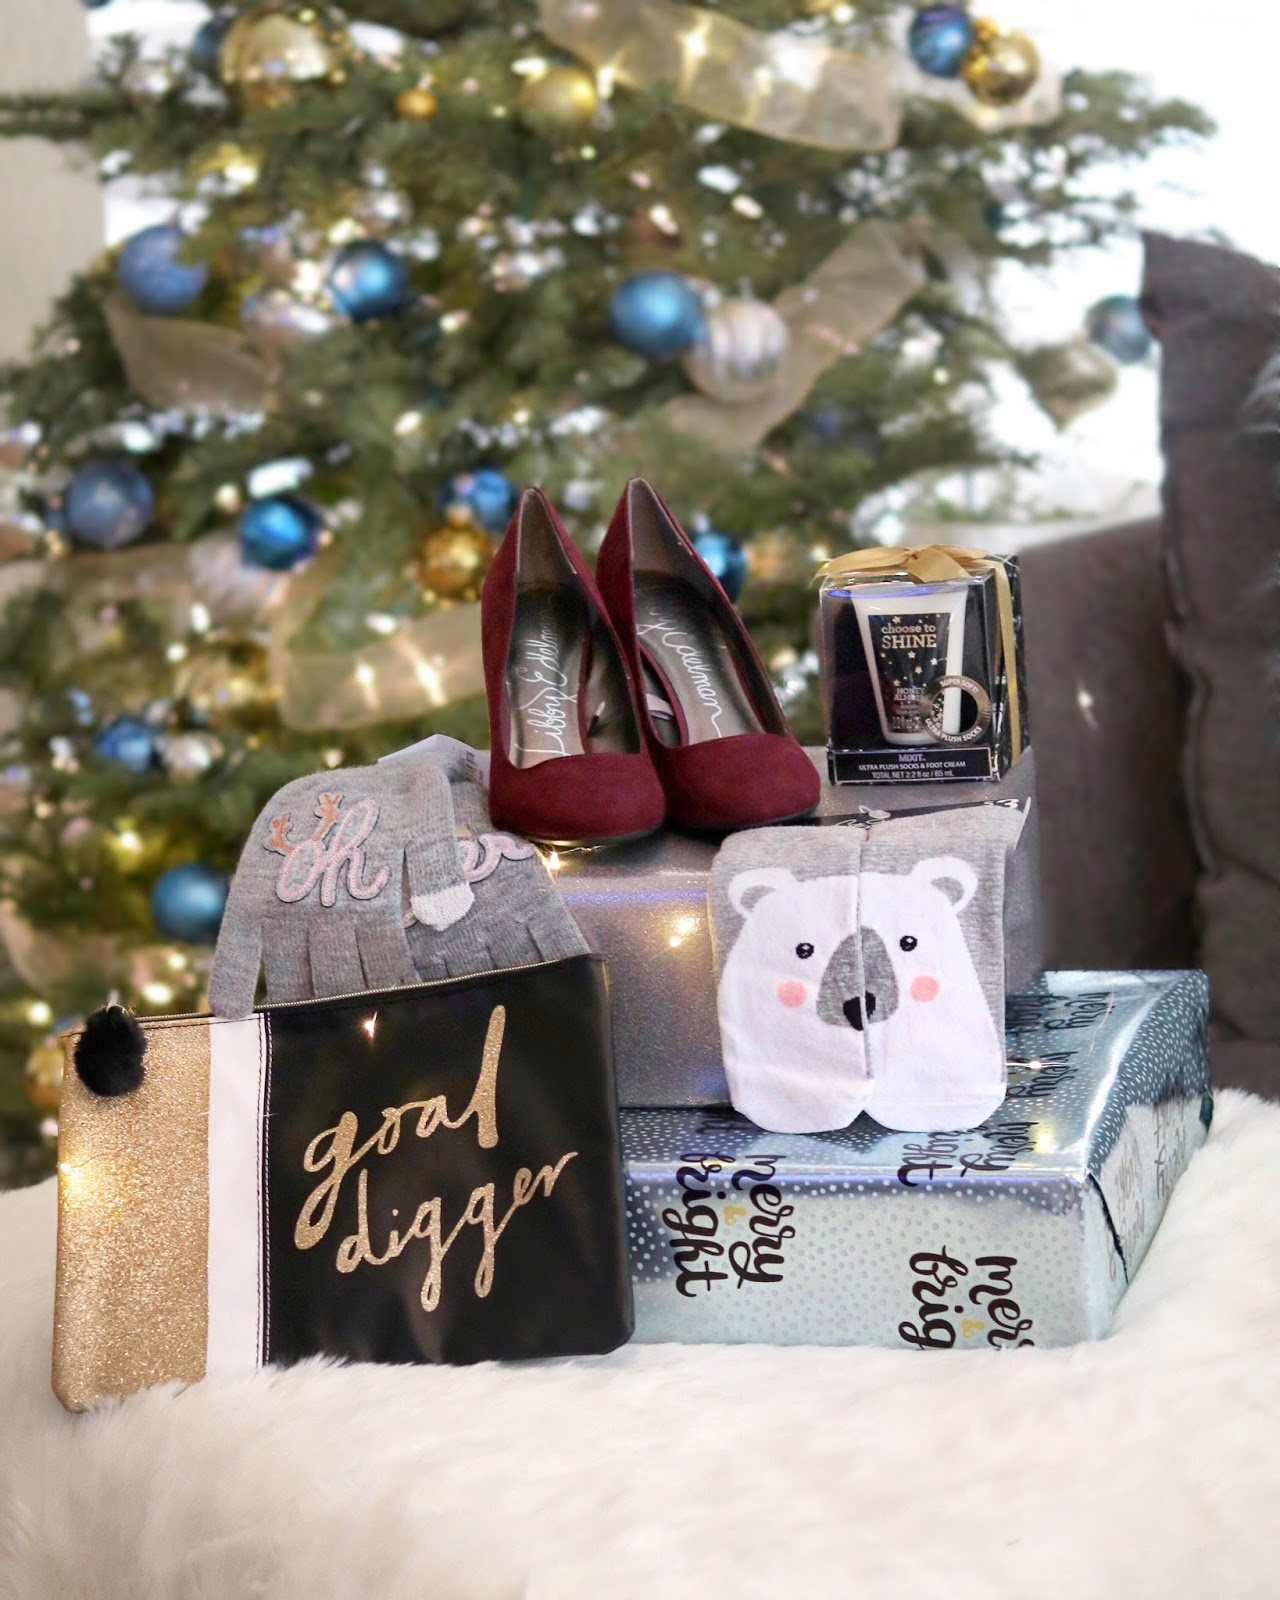 Take the JCPenney Holiday Challenge. #JCPHolidayChallenge, Under $100 gift guide